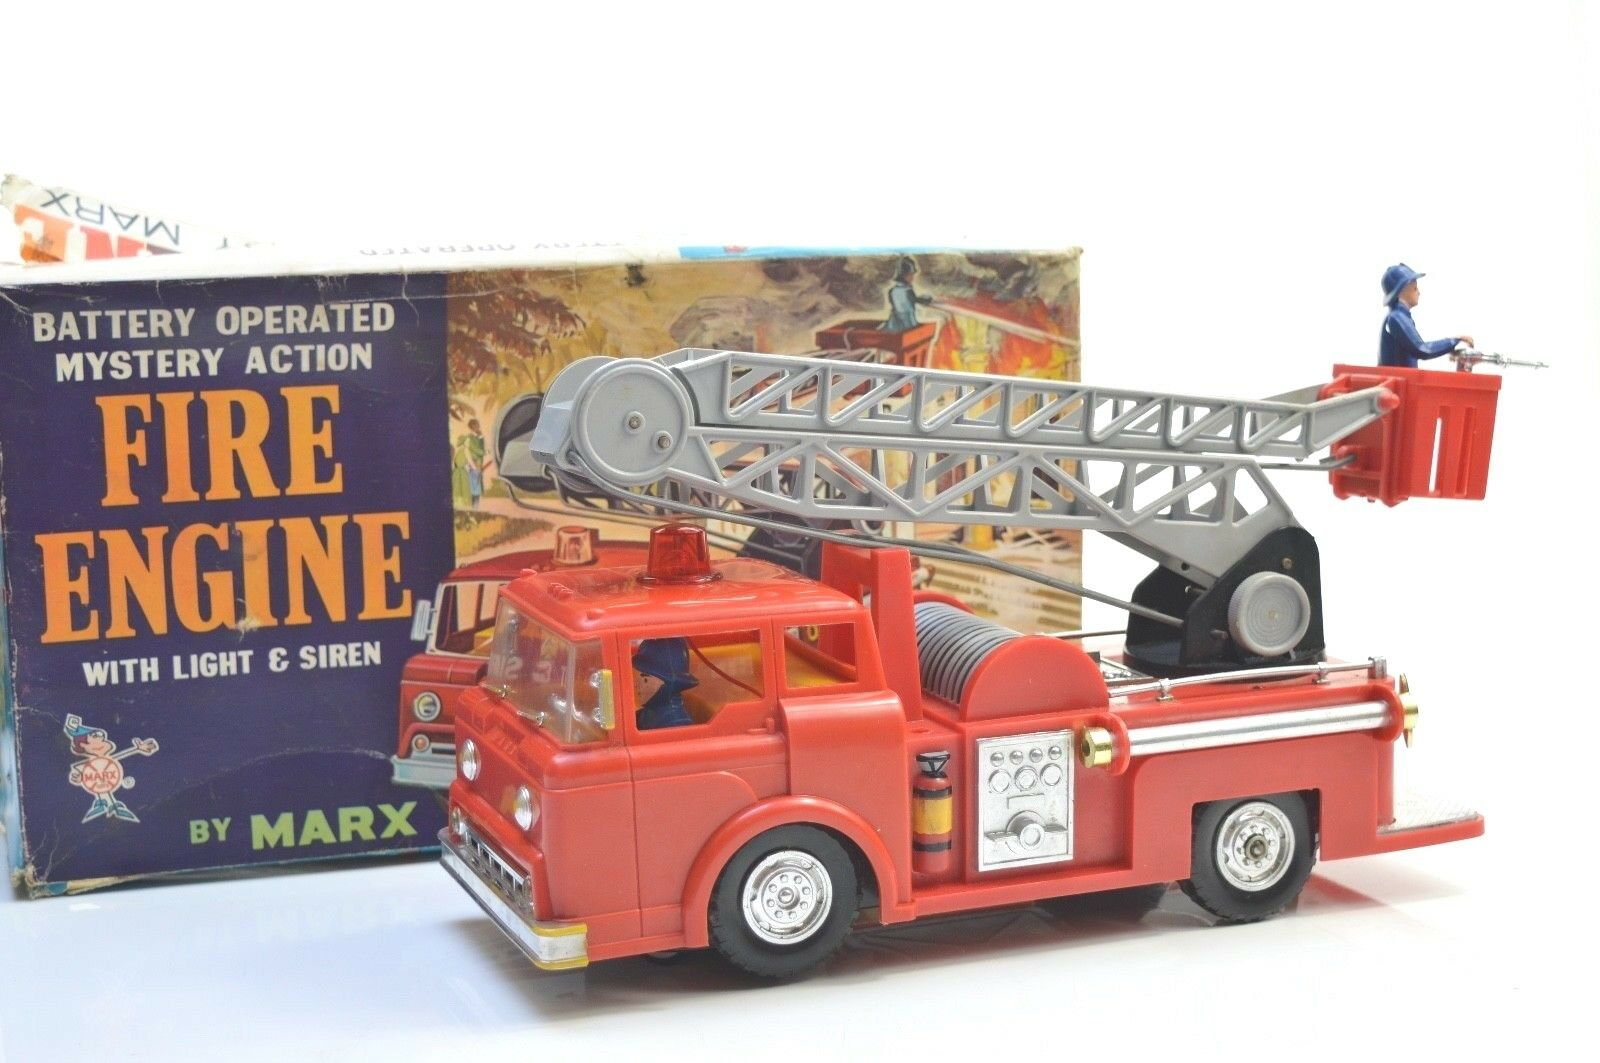 MARX BATTERY OPERATED MYSTERY ACTION FIRE ENGINE